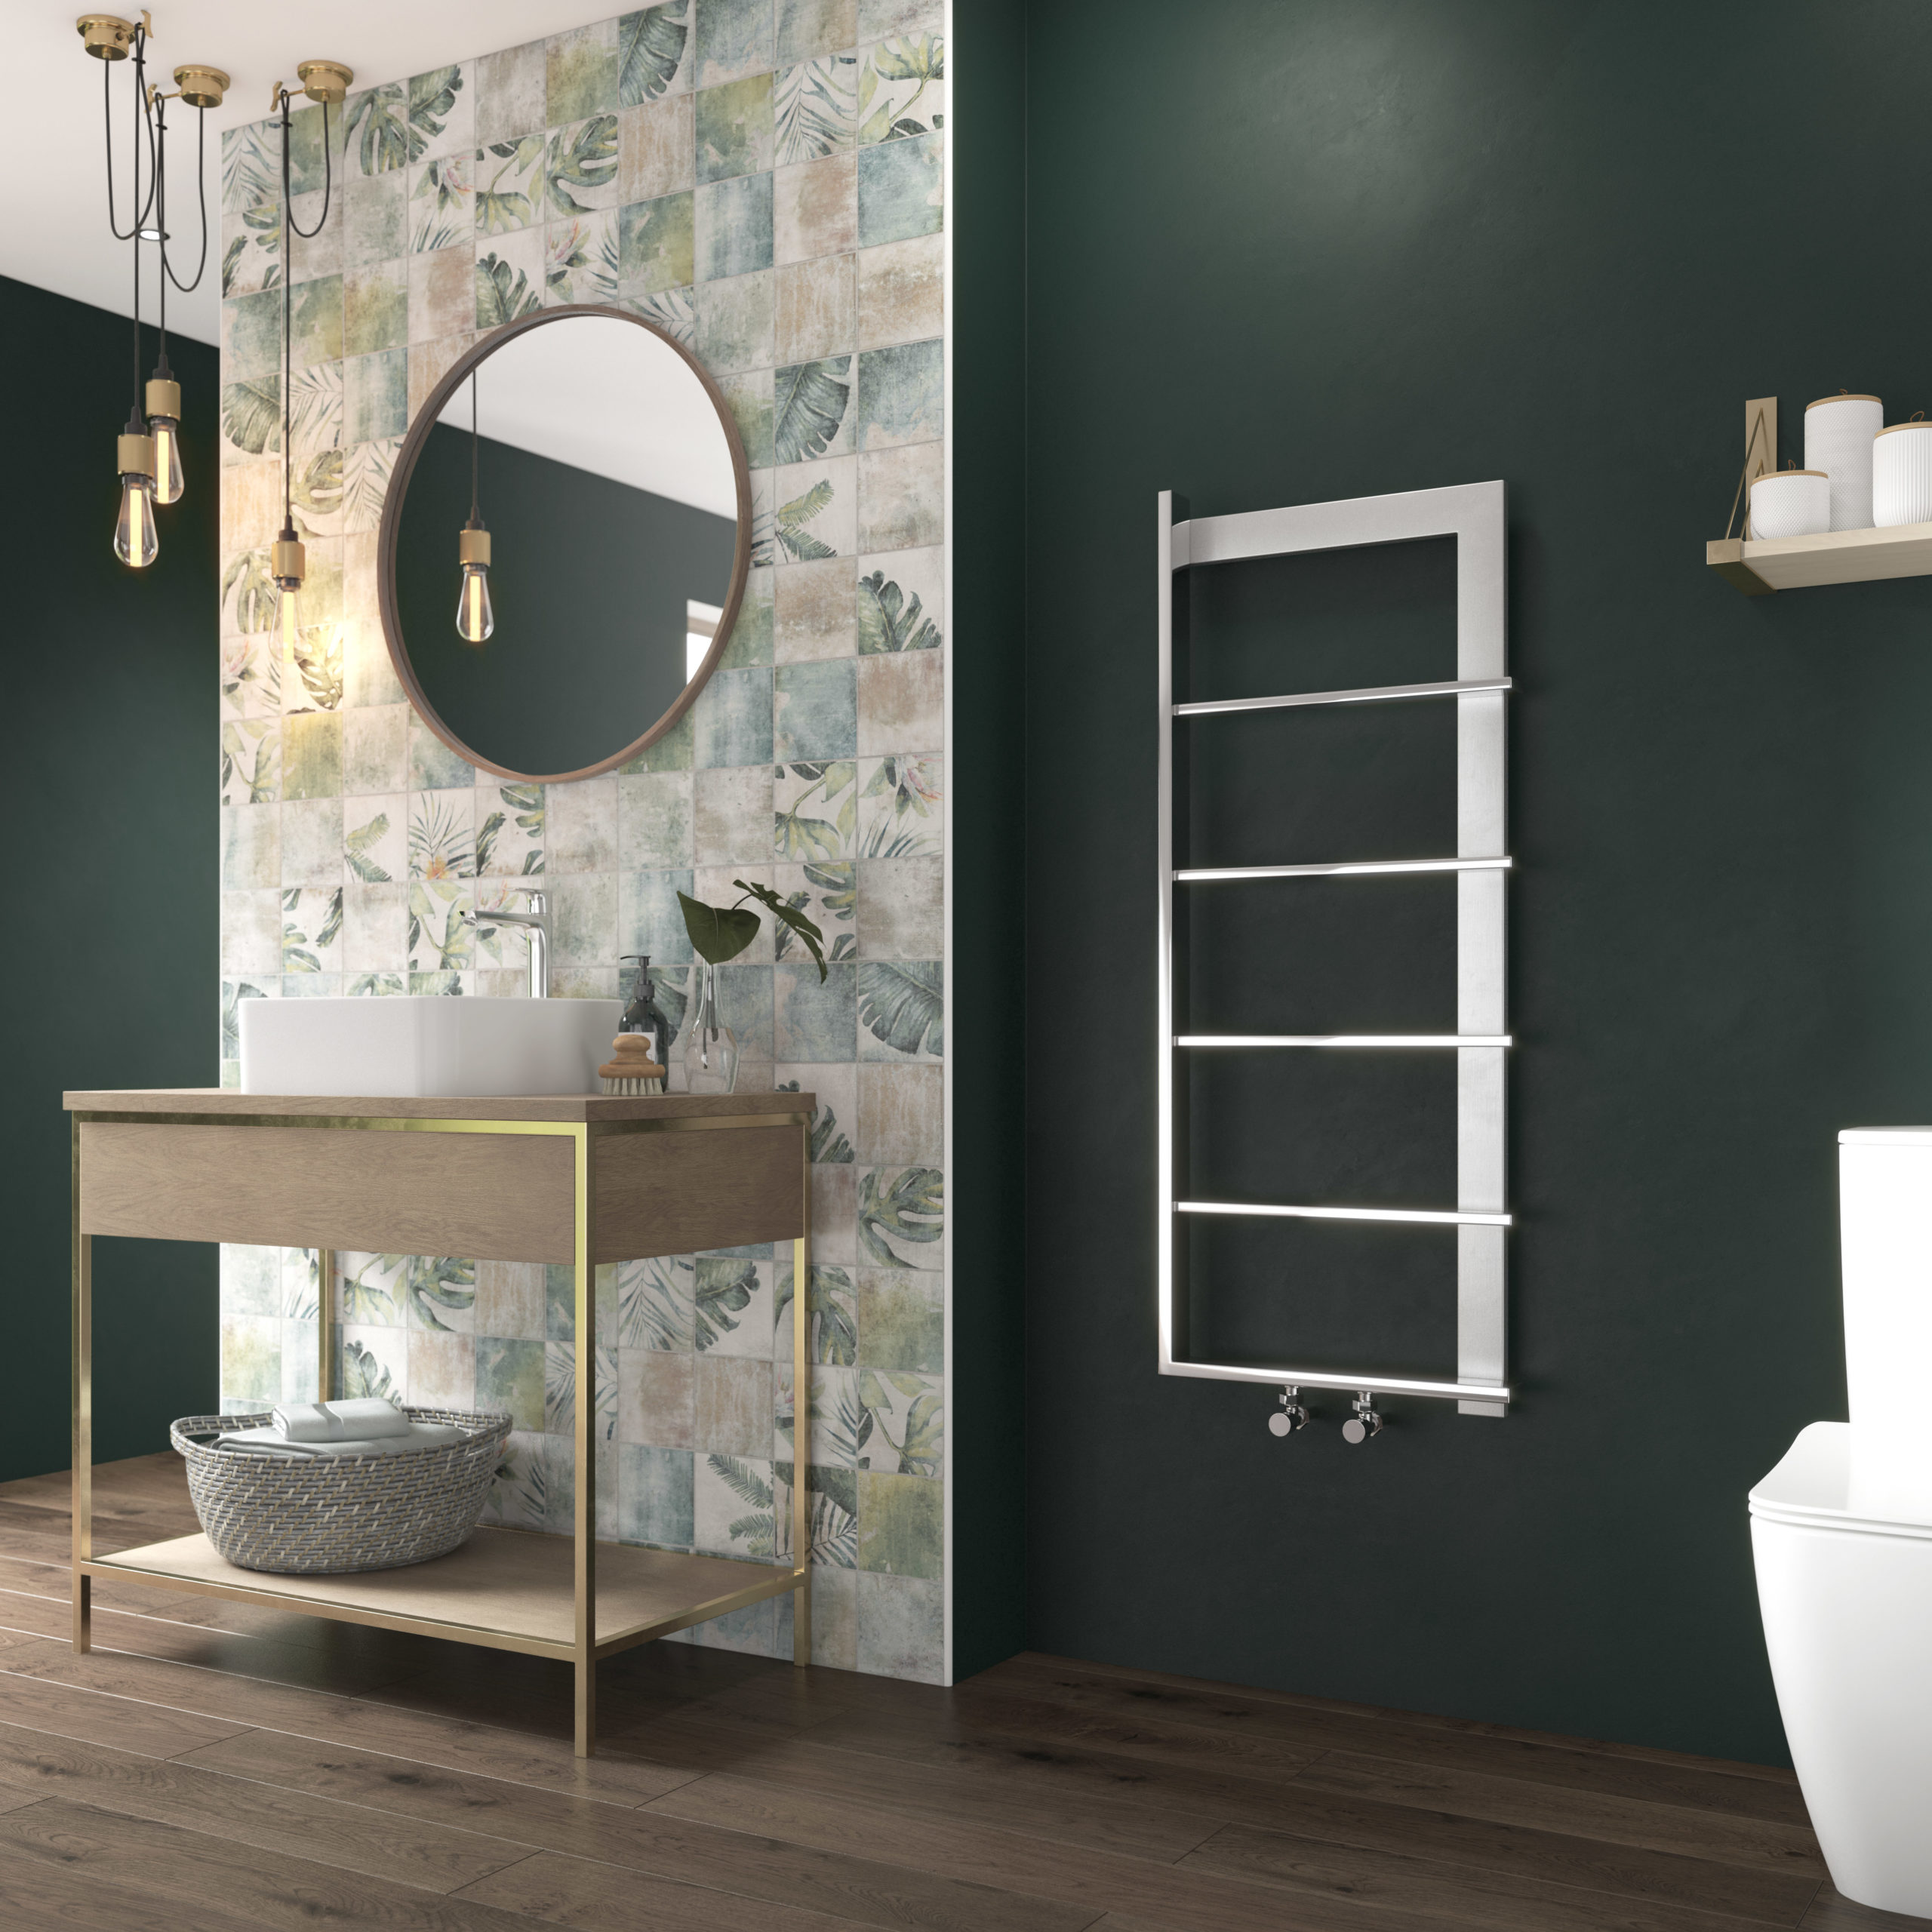 Lecco Radiators